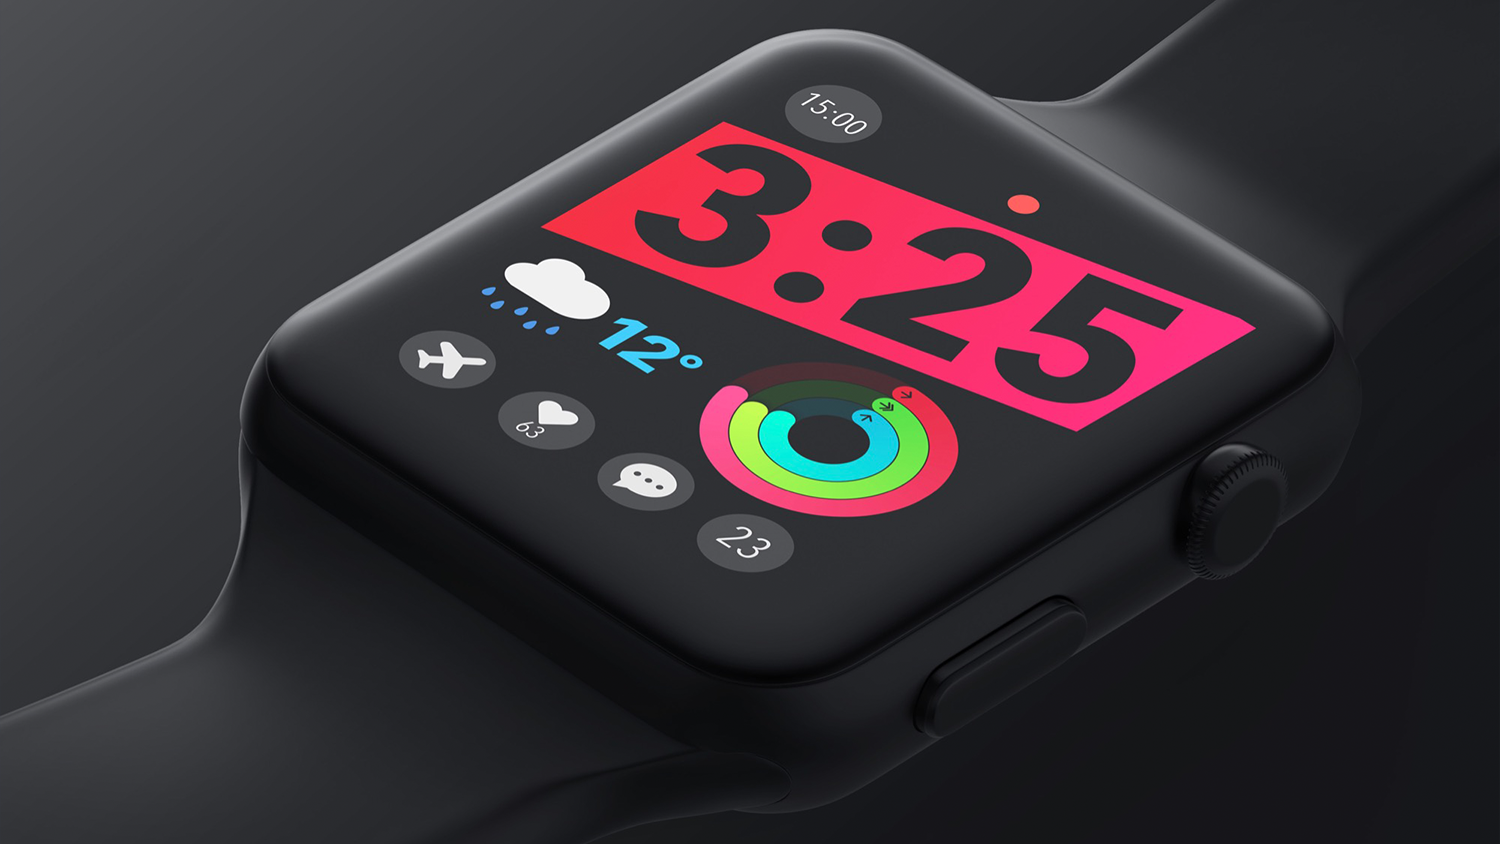 4 Reasons Apple May Not Allow Third Party Watch Faces